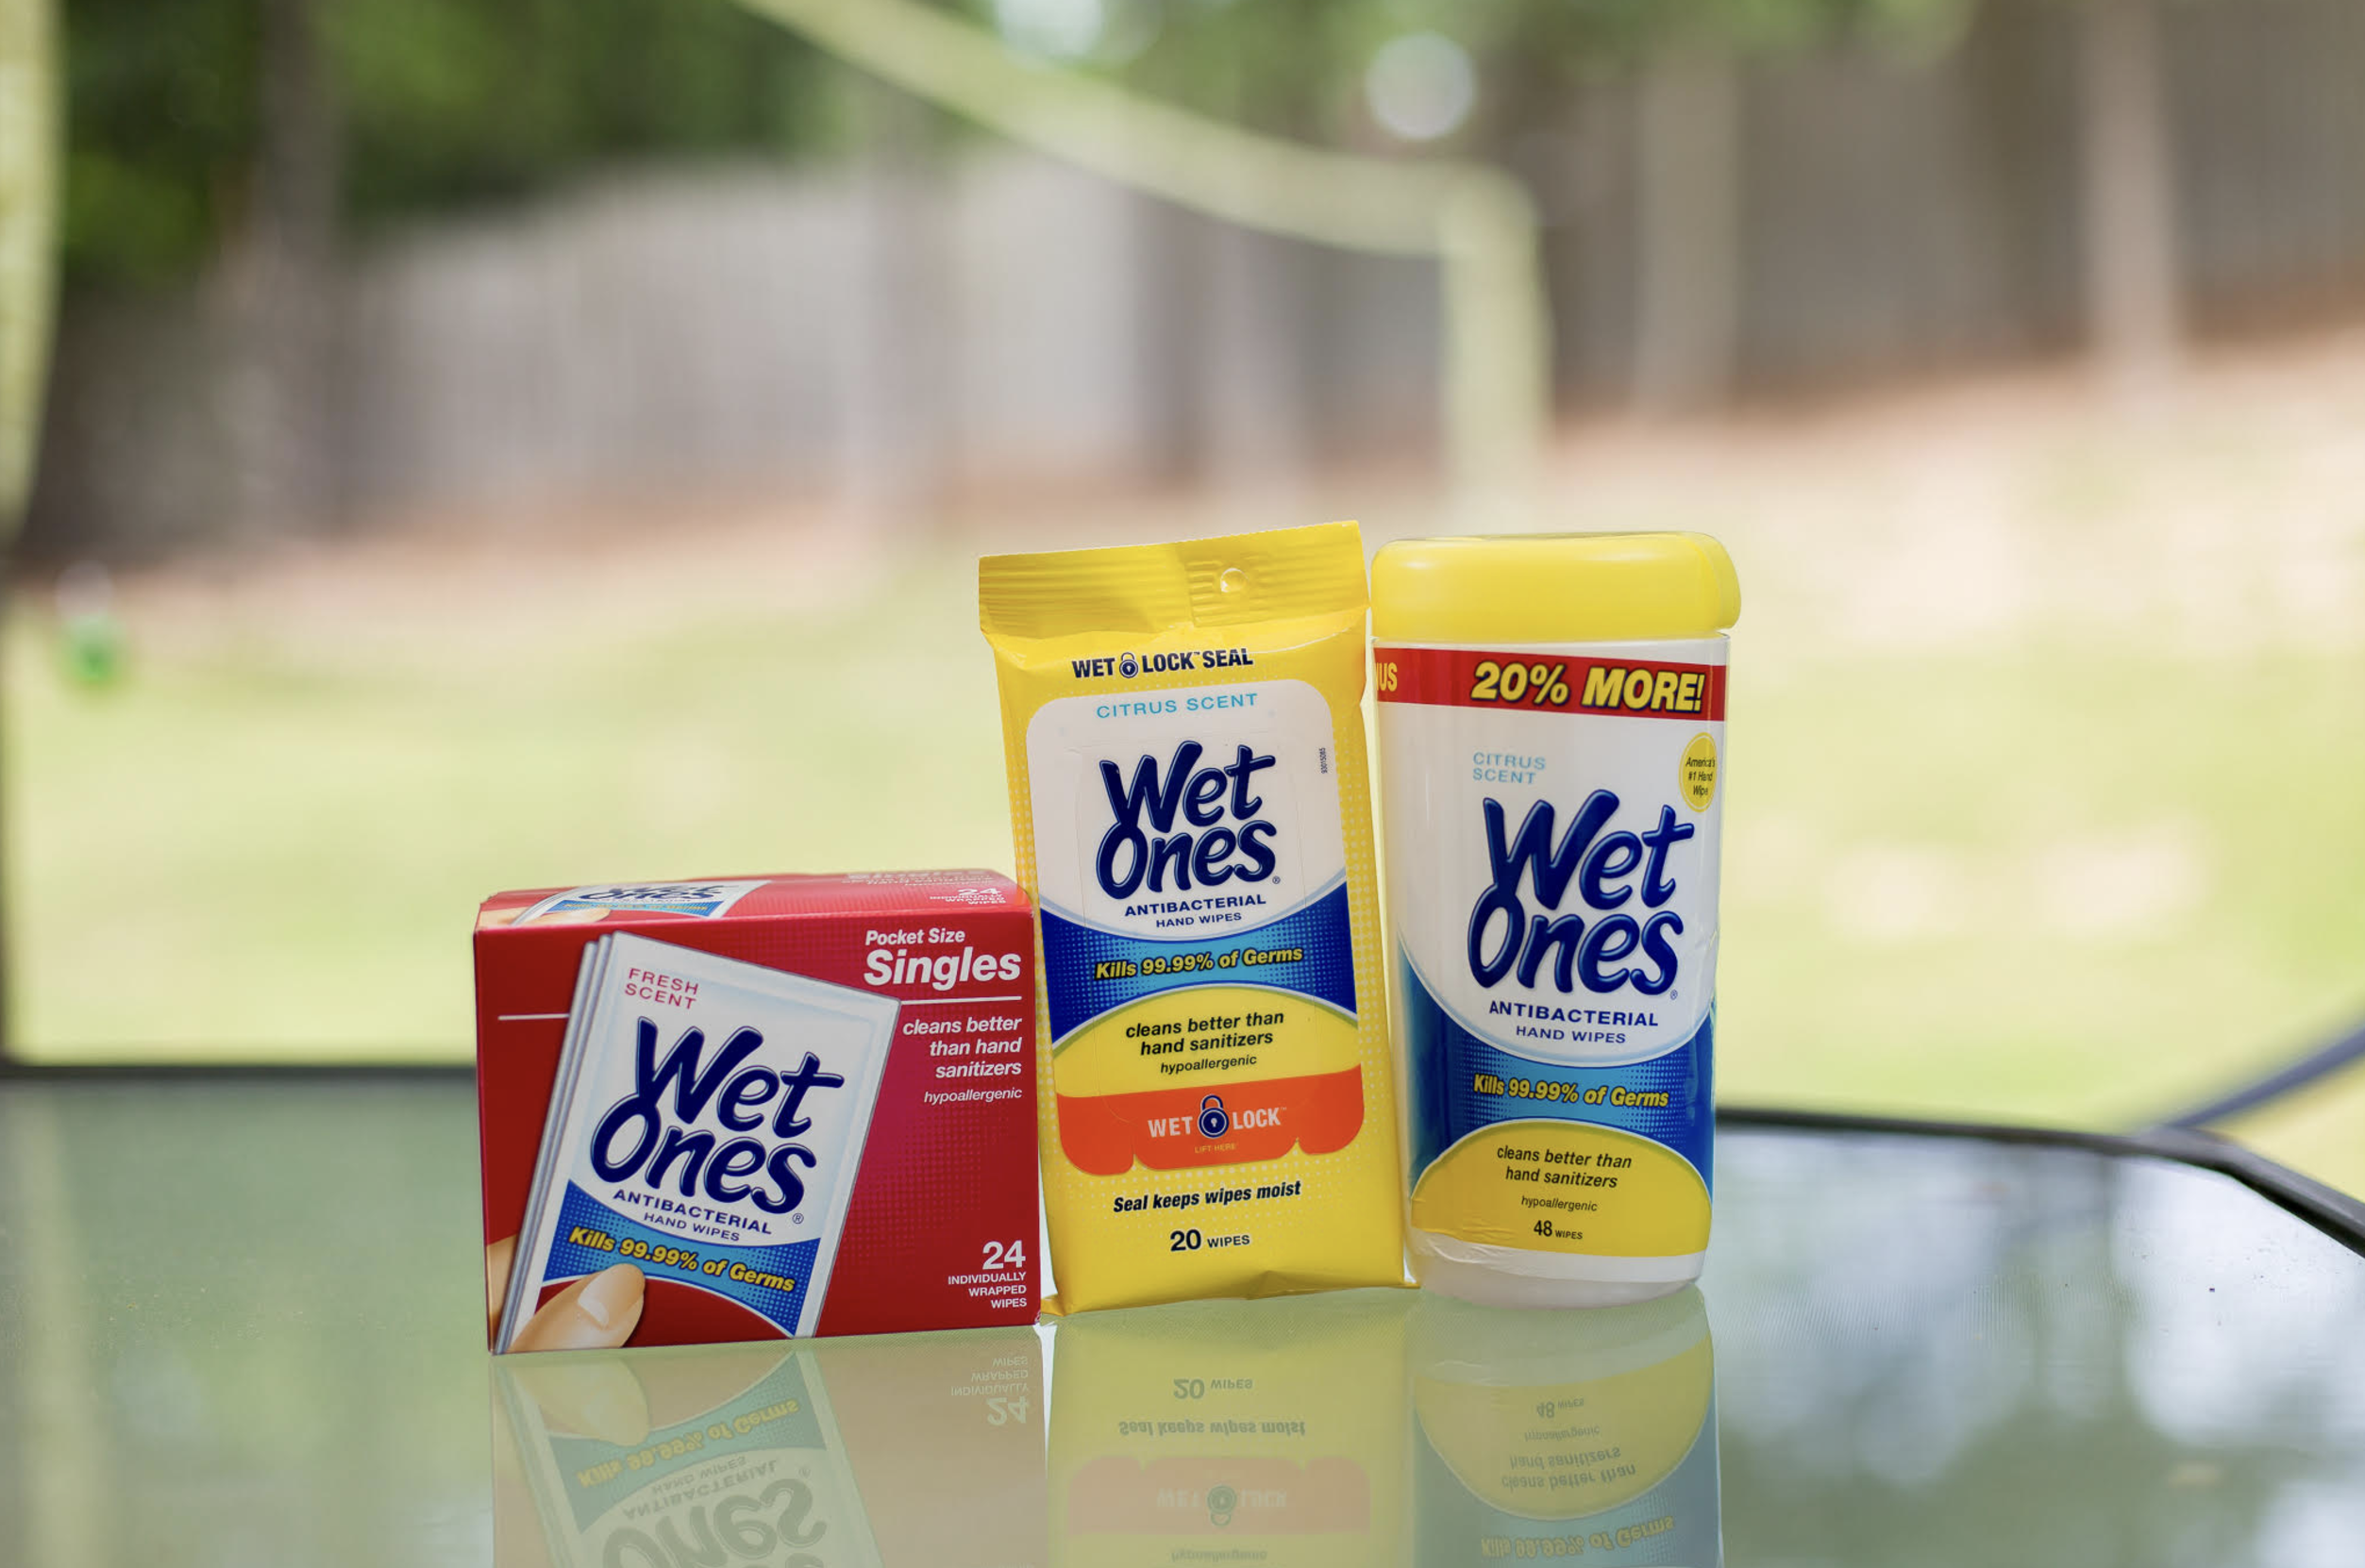 Wet Ones Hand Wipes kill up to 99.99% of germs! They are a convenient 2 in 1 way option for wiping dirt and messes when water isn't readily available.